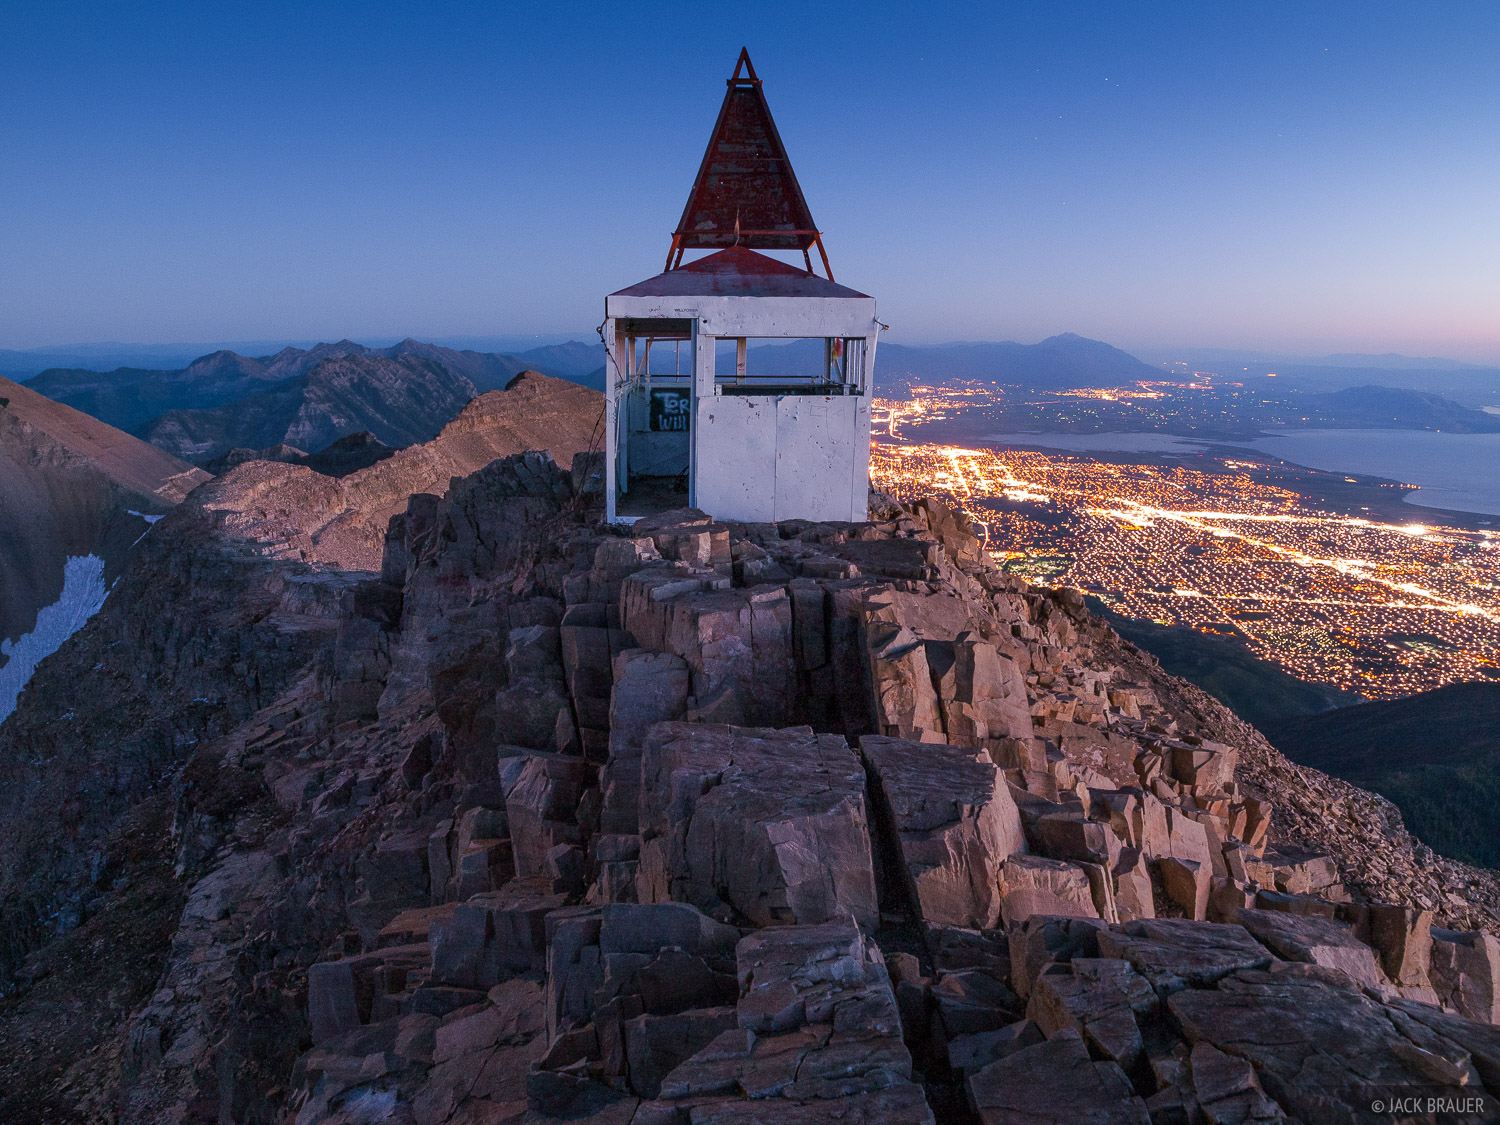 The summit shelter on Mount Timpanogos, with the city lights of Provo, Utah far below.